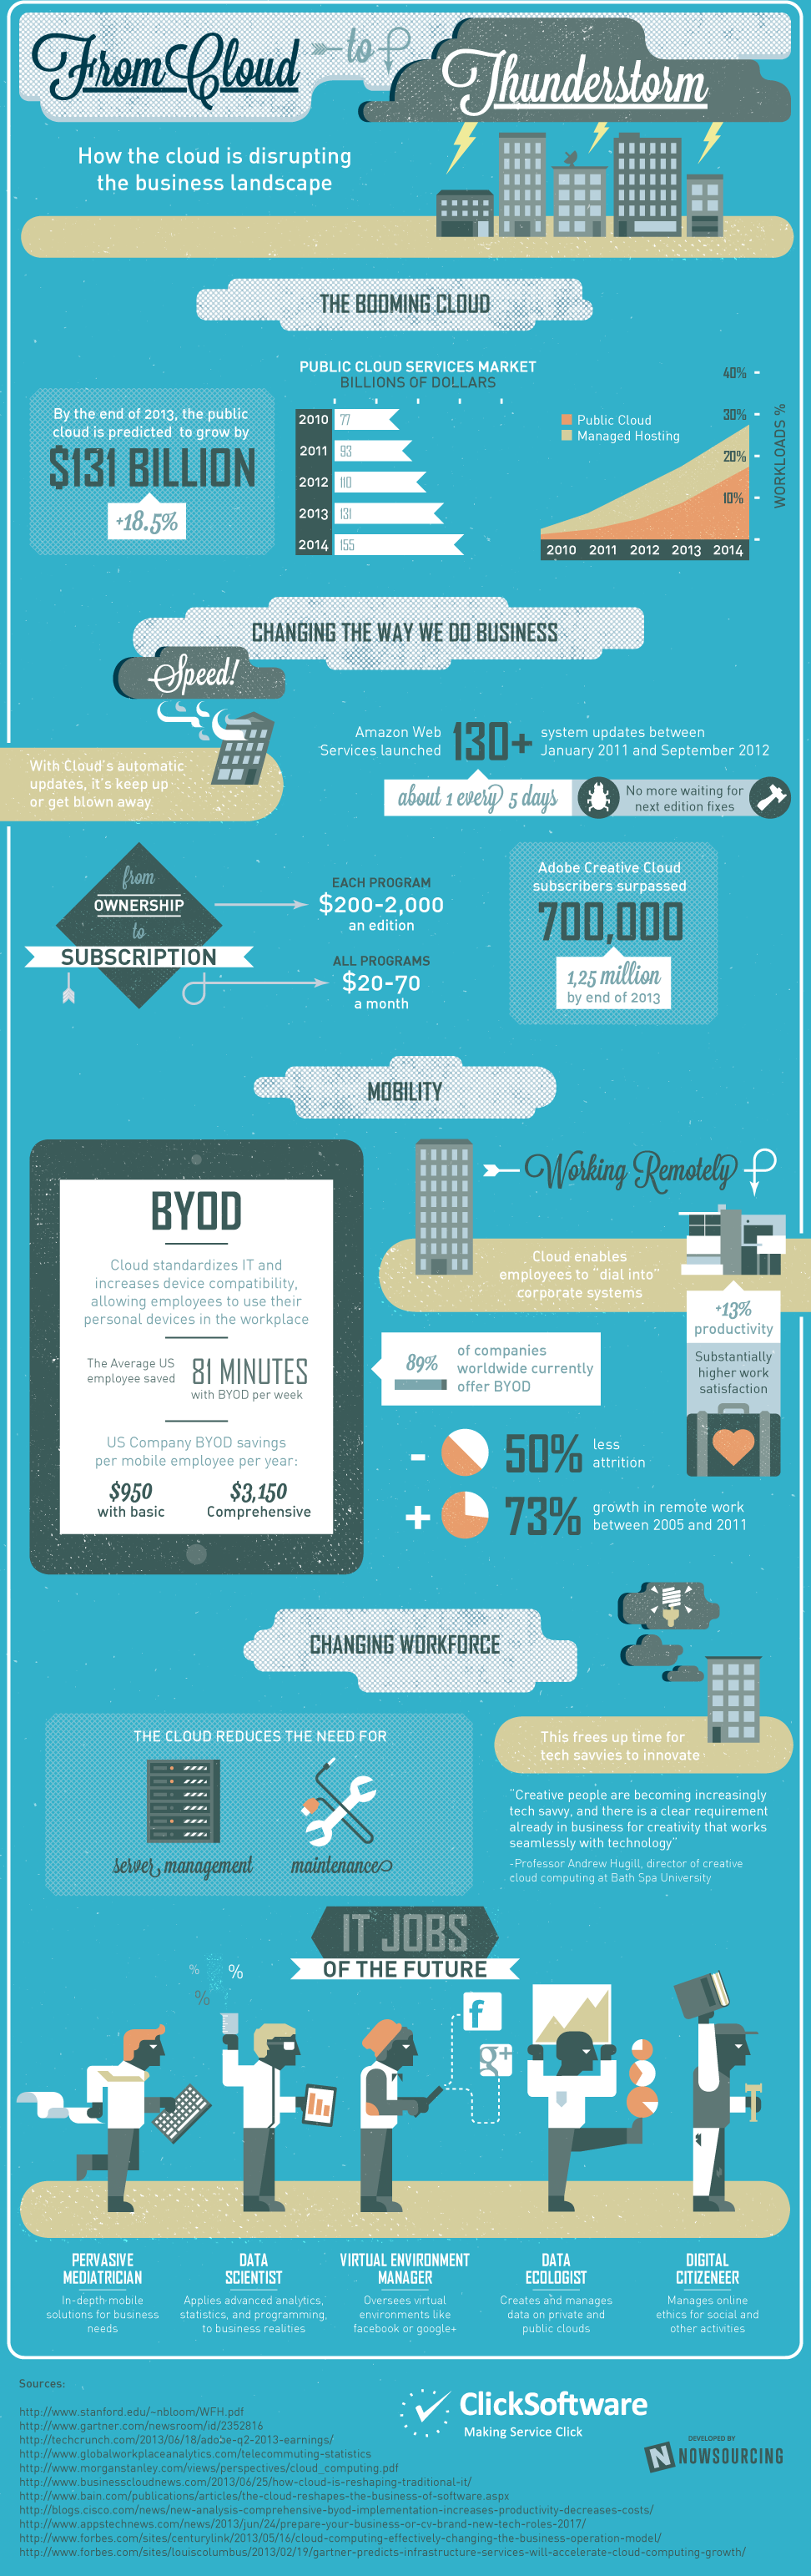 How the cloud is disrupting the business landscape #infographic